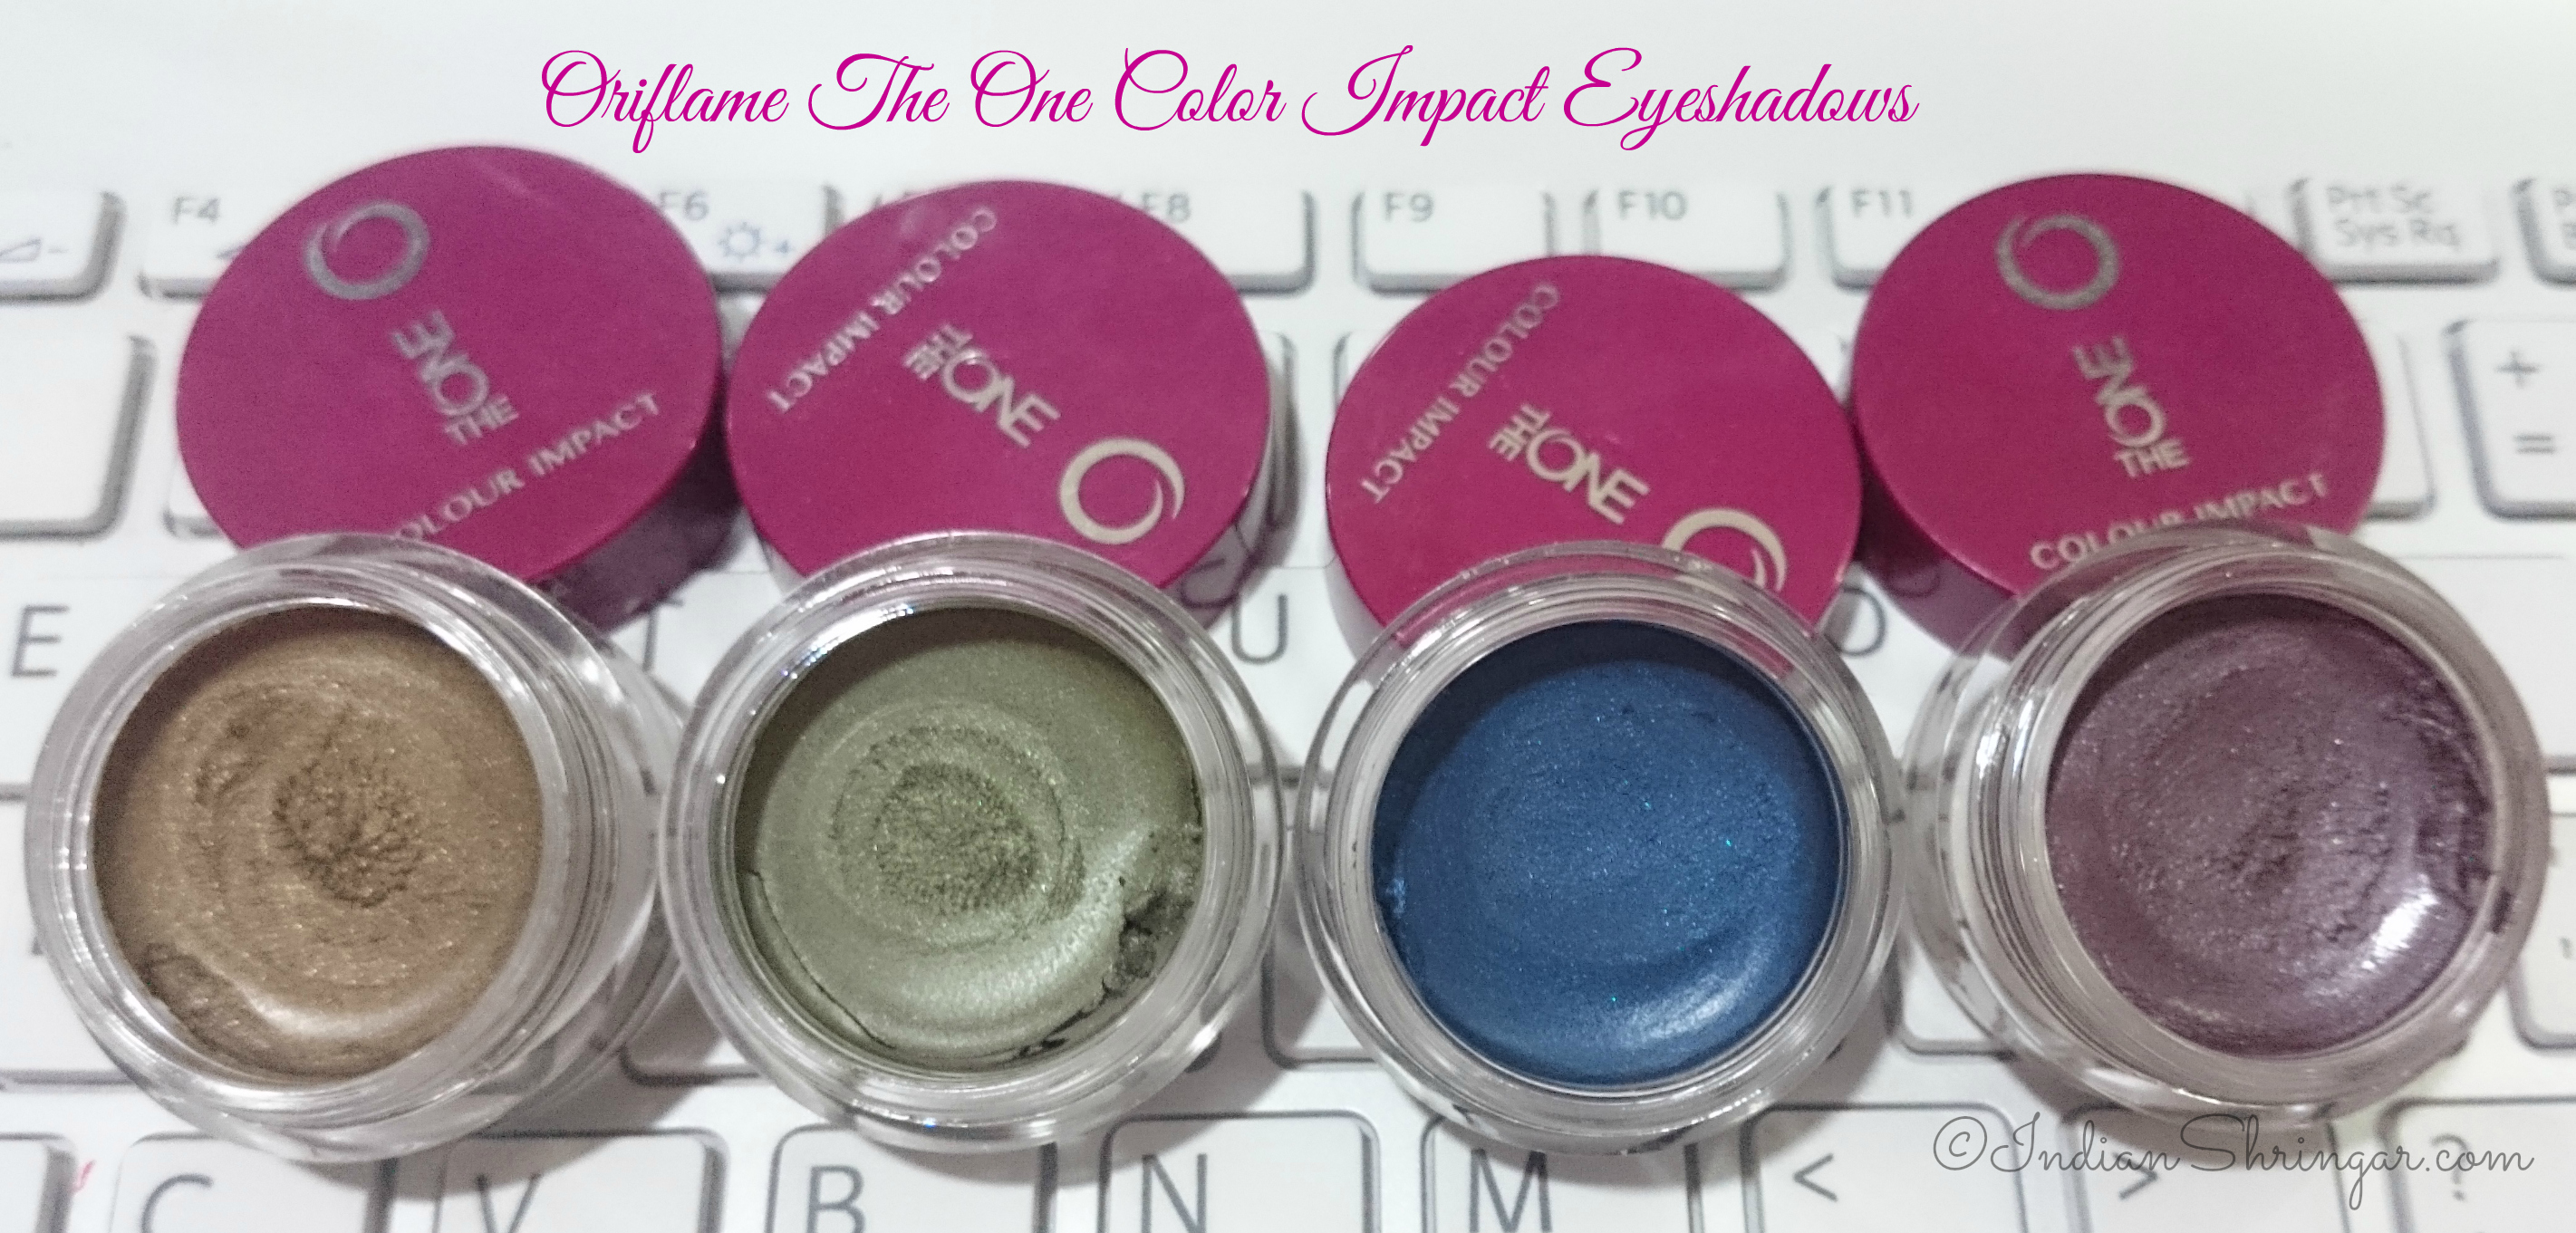 Oriflame The One Color Impact Eyeshadows review and swatches